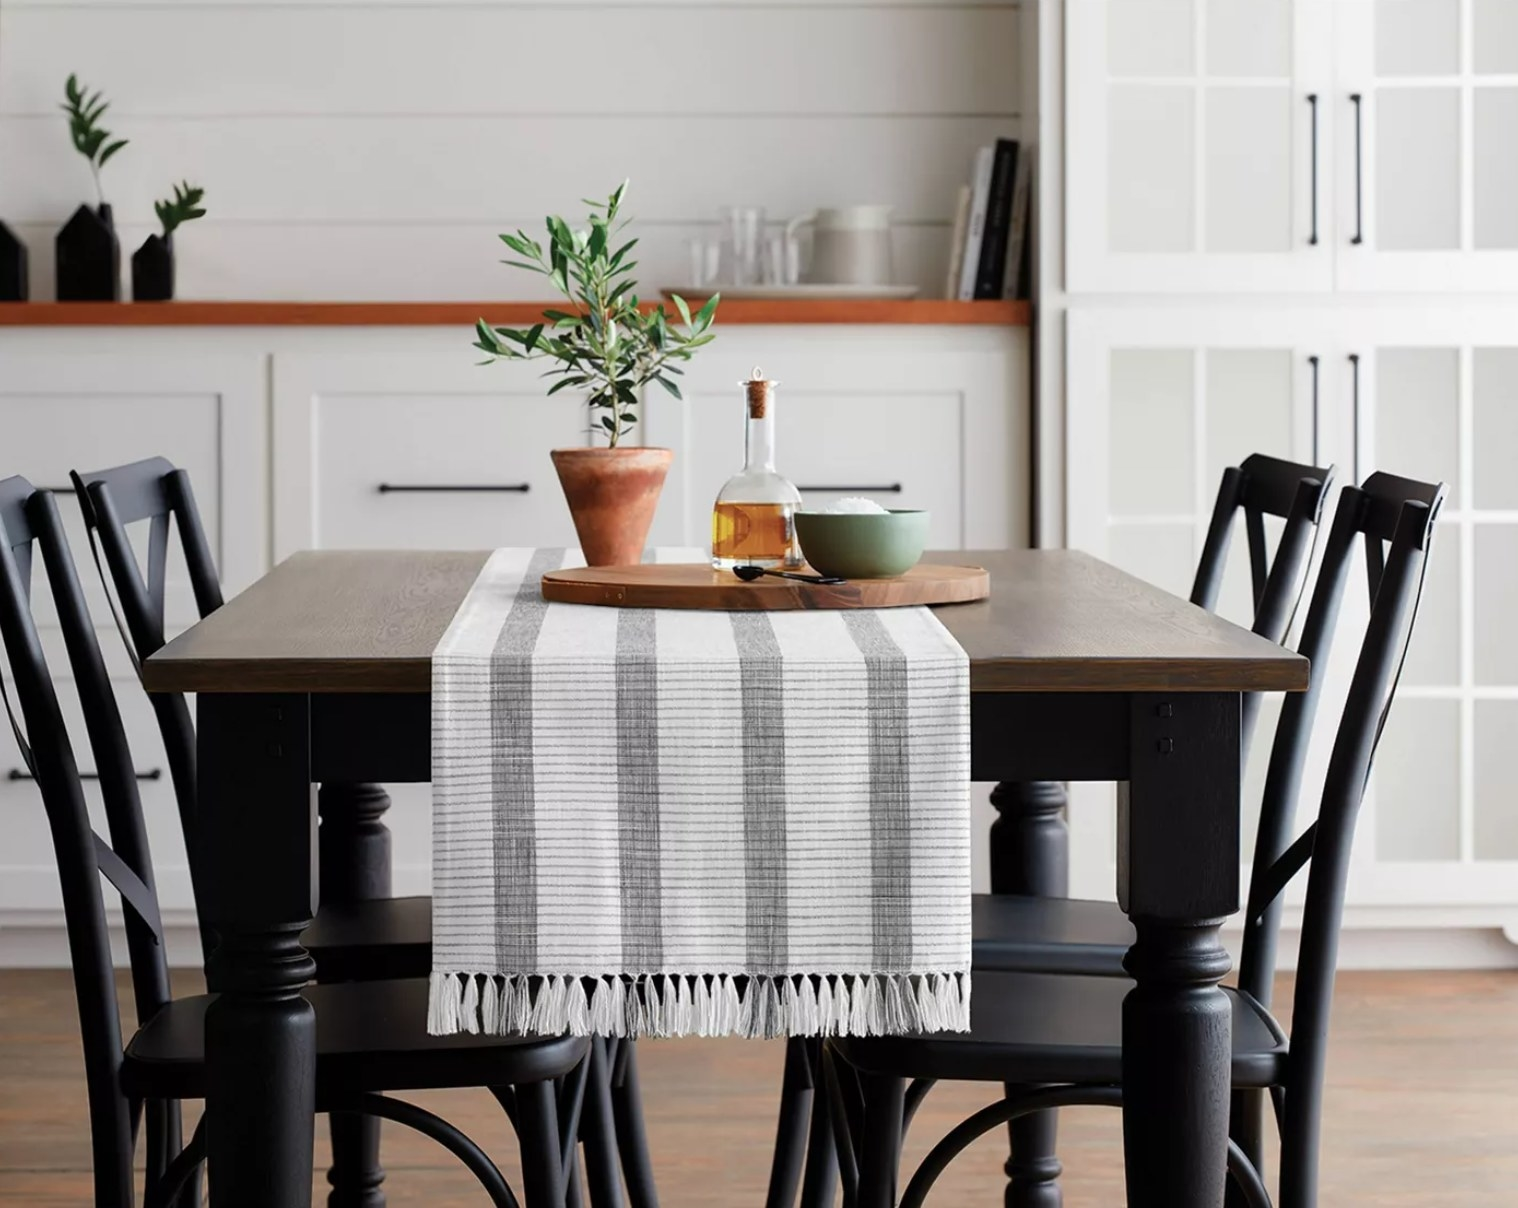 The table runner with gray and white stripes on a table setting